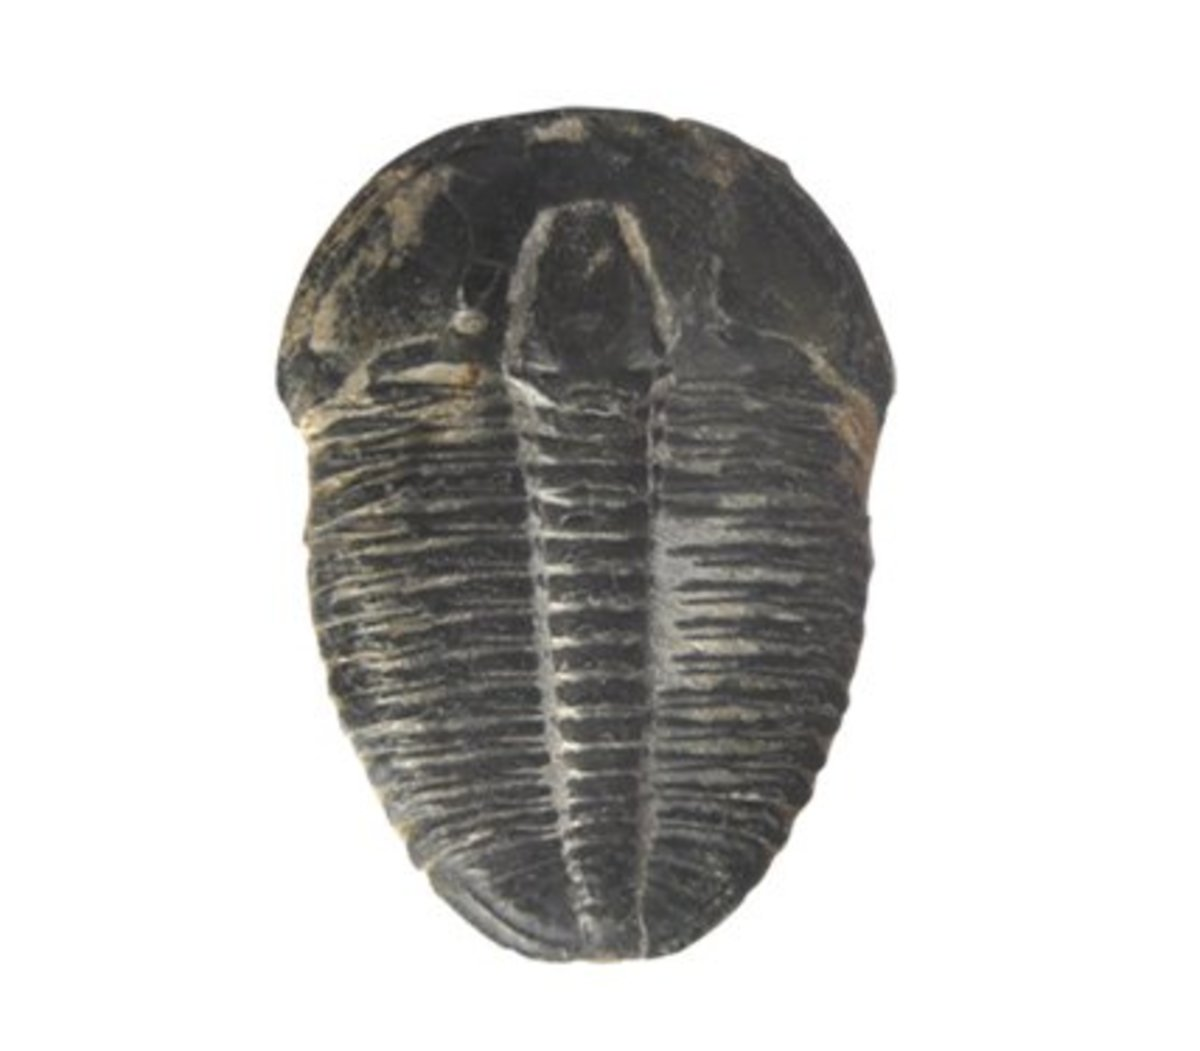 A trilobite from the Middle Cambrian period, Utah USA.